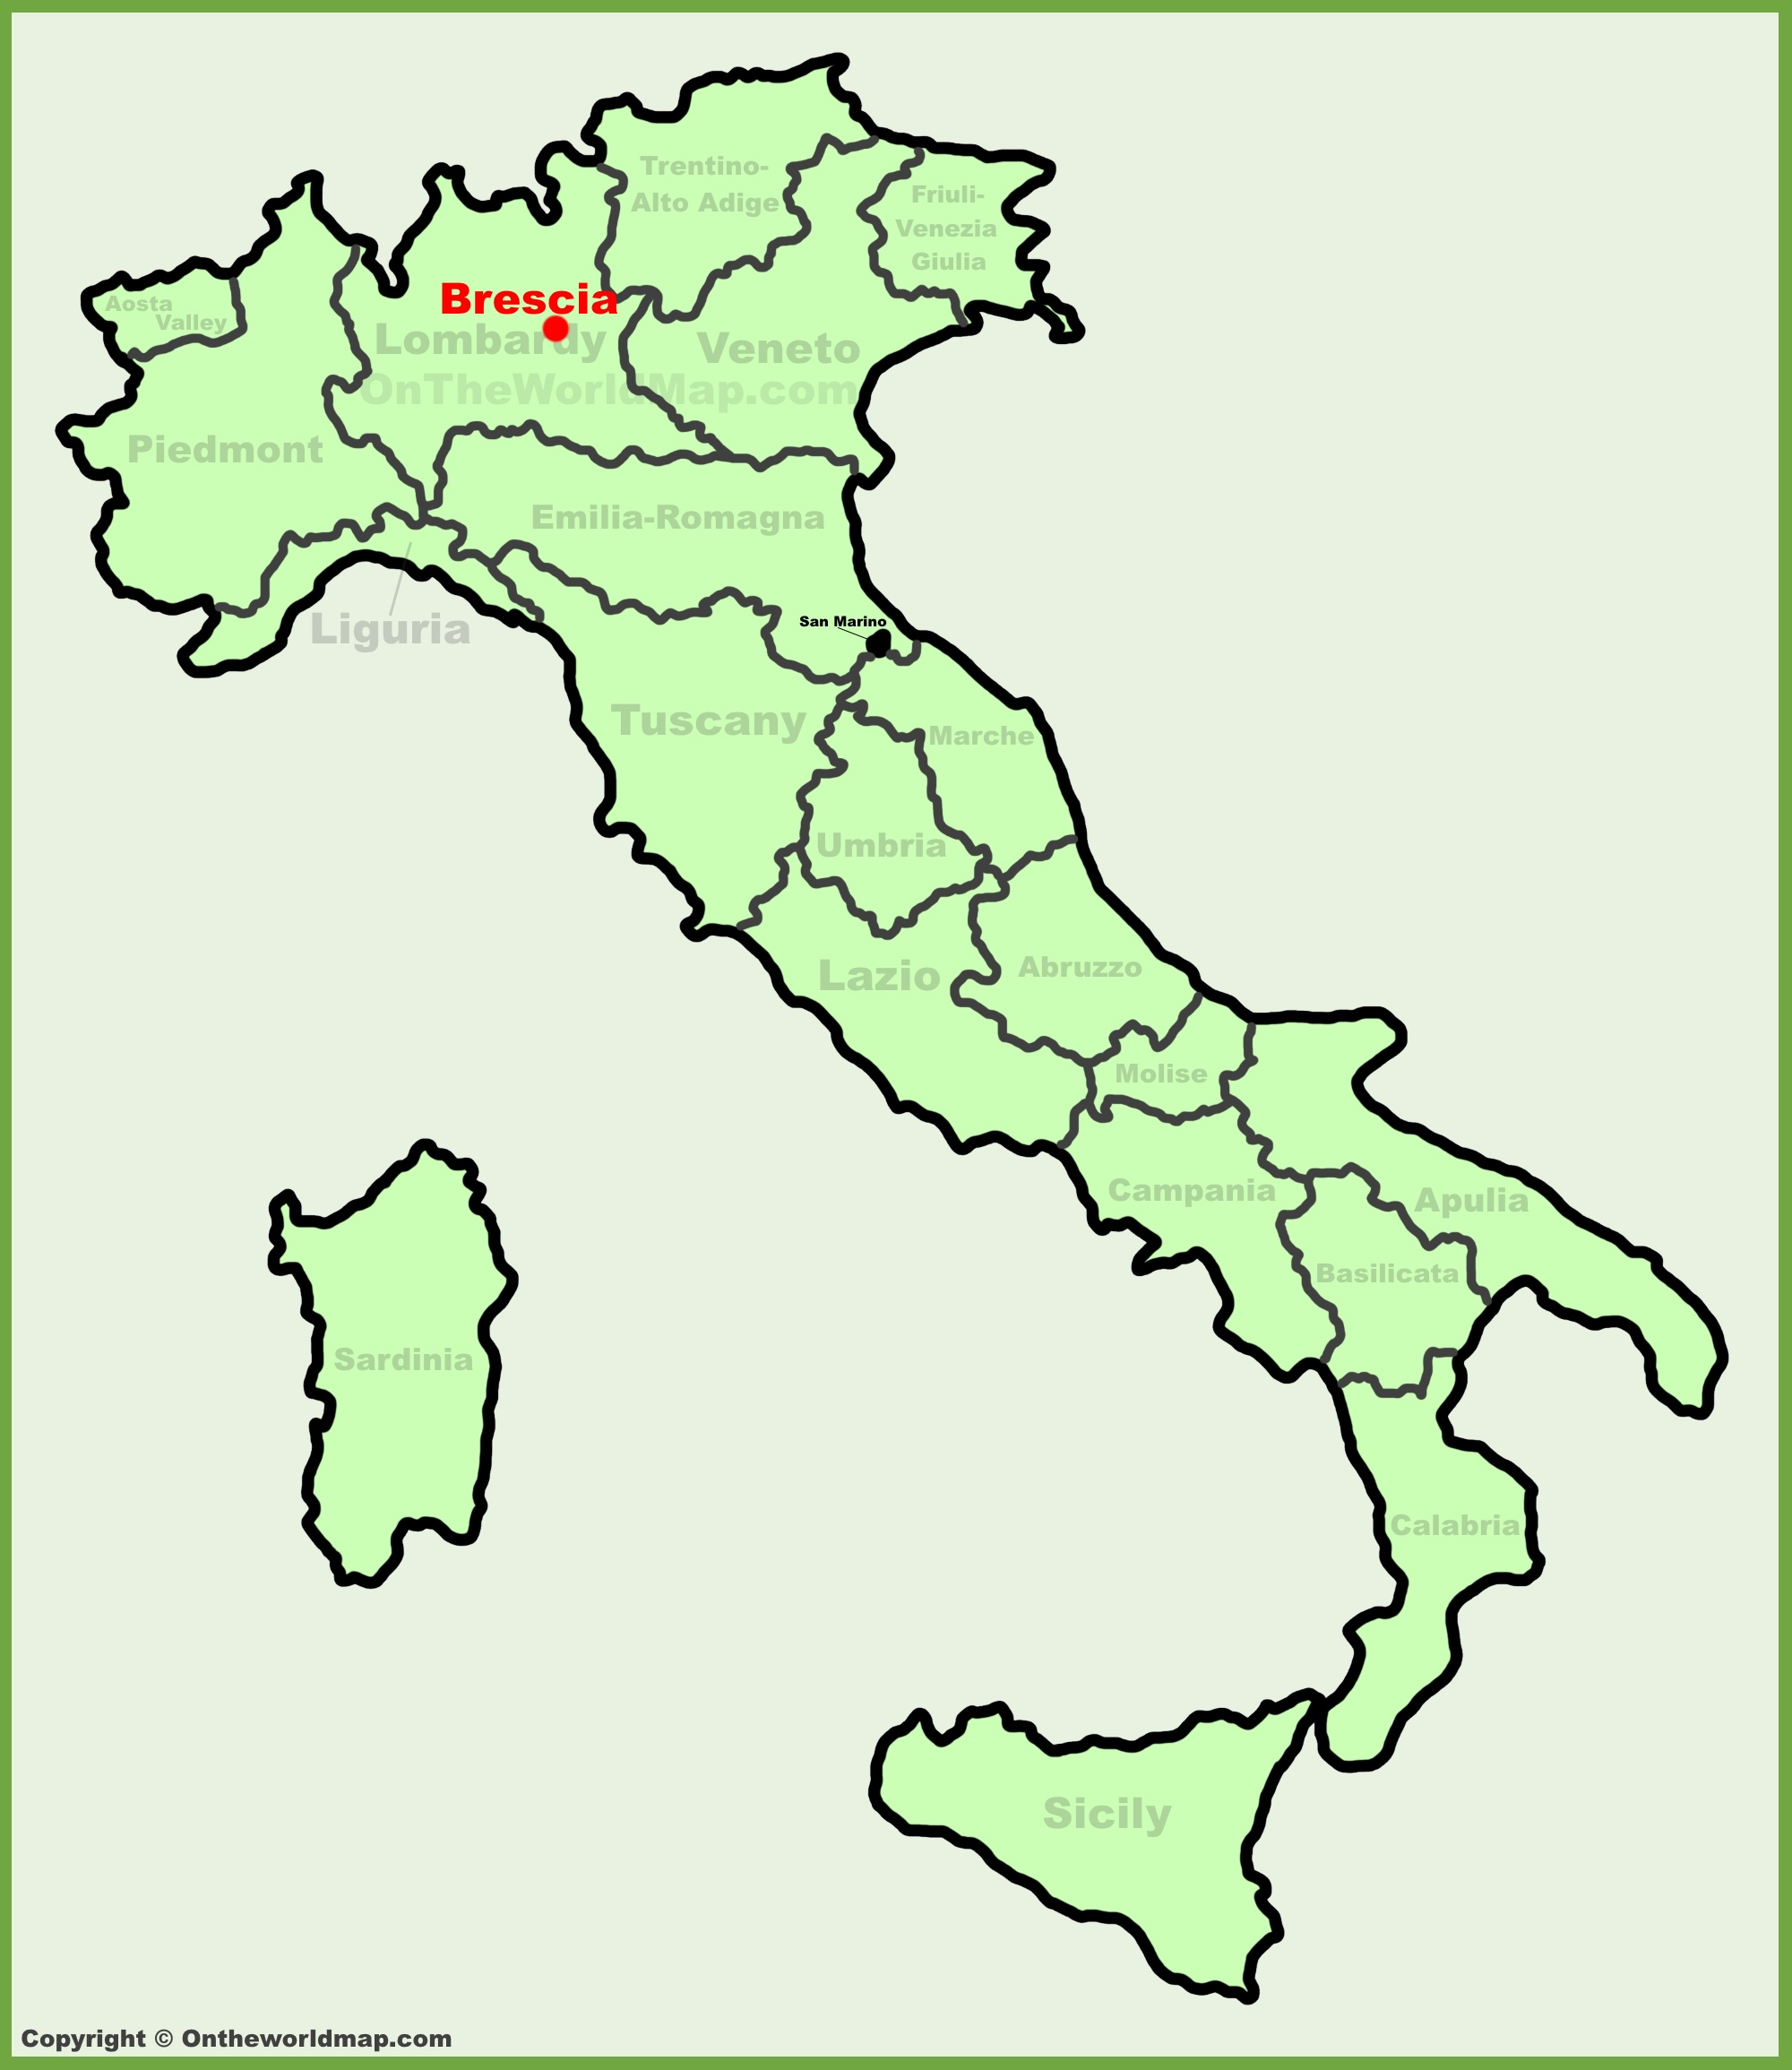 Brescia location on the Italy map